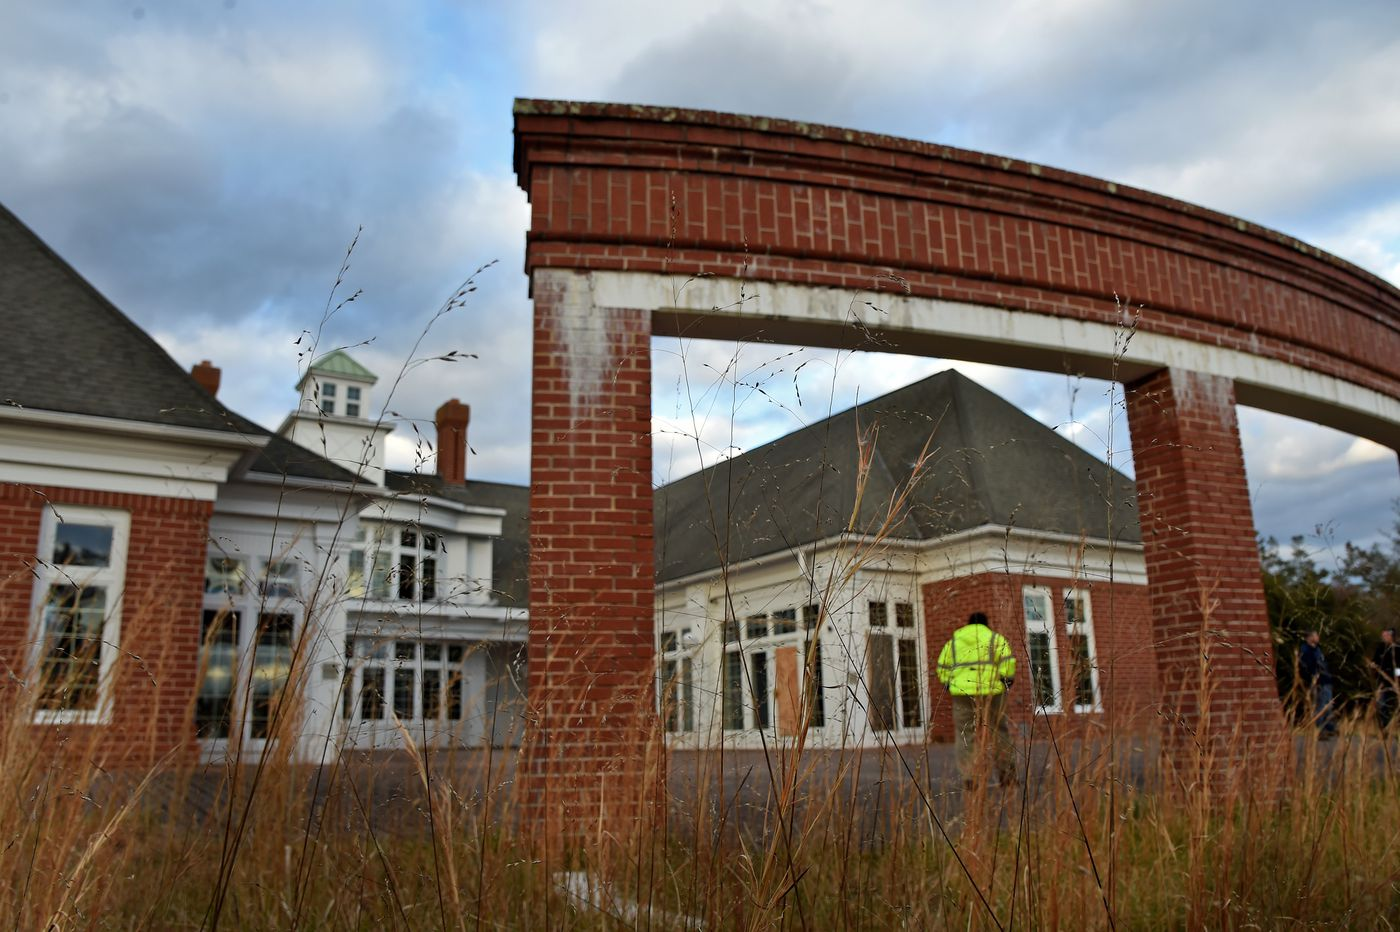 This 1,400-acre farm just became a jewel of New Jersey preservation, but not all are happy